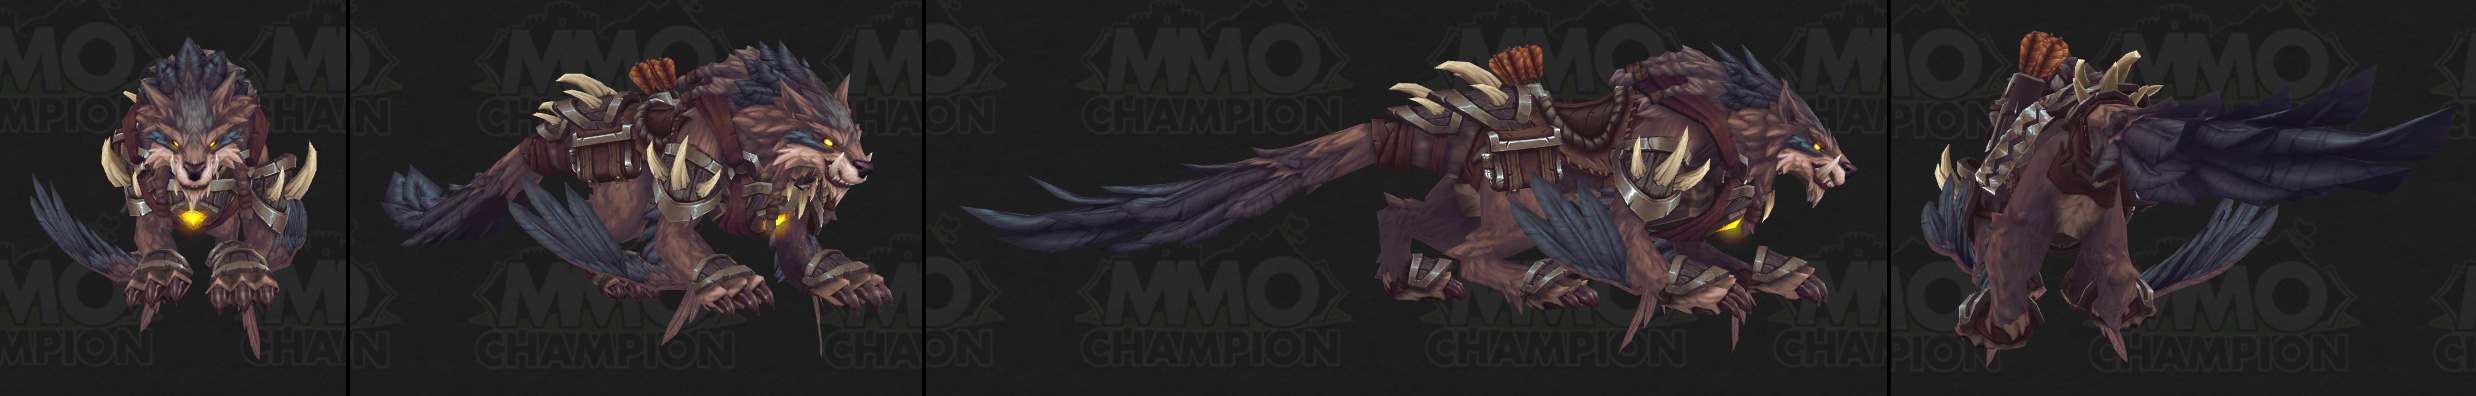 Patch 72 Class Mount Models Mmo Champion